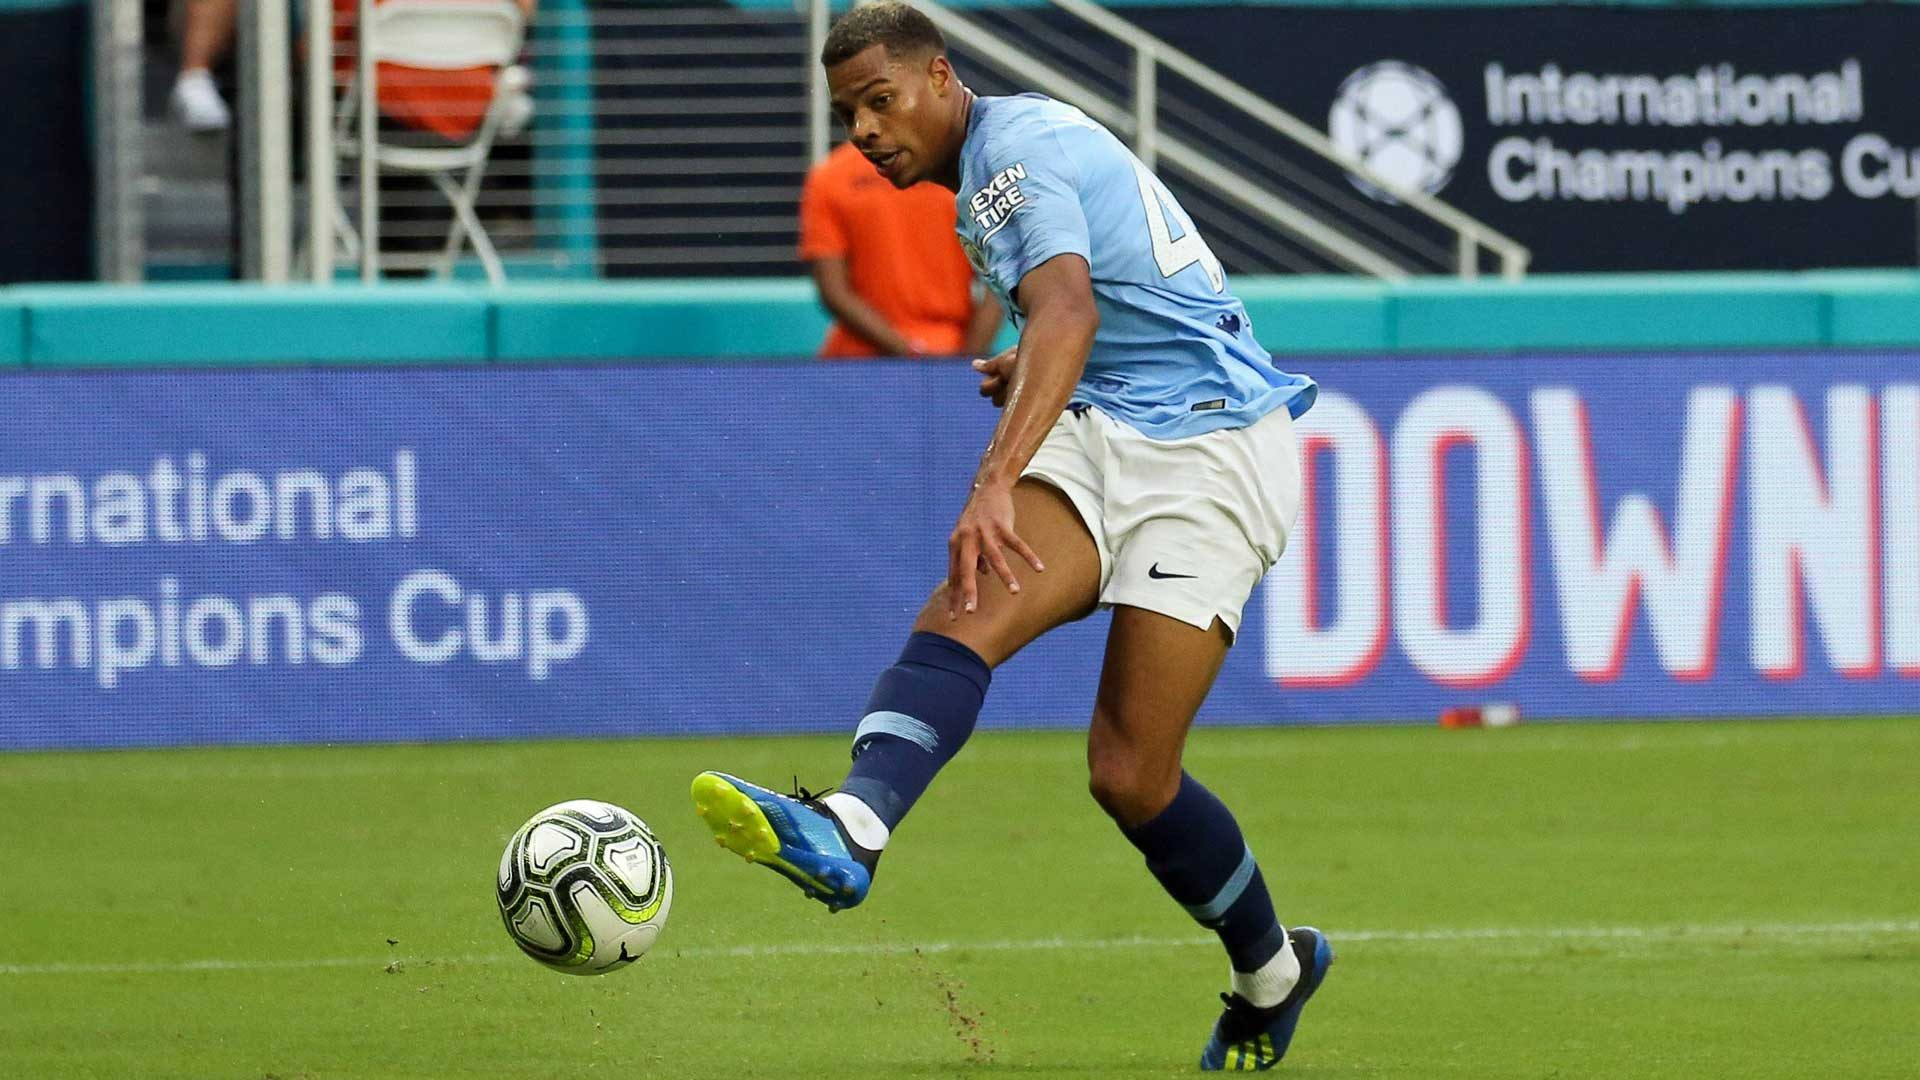 Find the latest lukas nmecha news, stats, transfer rumours, photos, titles, clubs, goals scored this season and more. Https Img Bundesliga Com Tachyon Sites 2 2019 06 Nmecha Mnc Jpg Crop 0px 0px 1920px 1080px